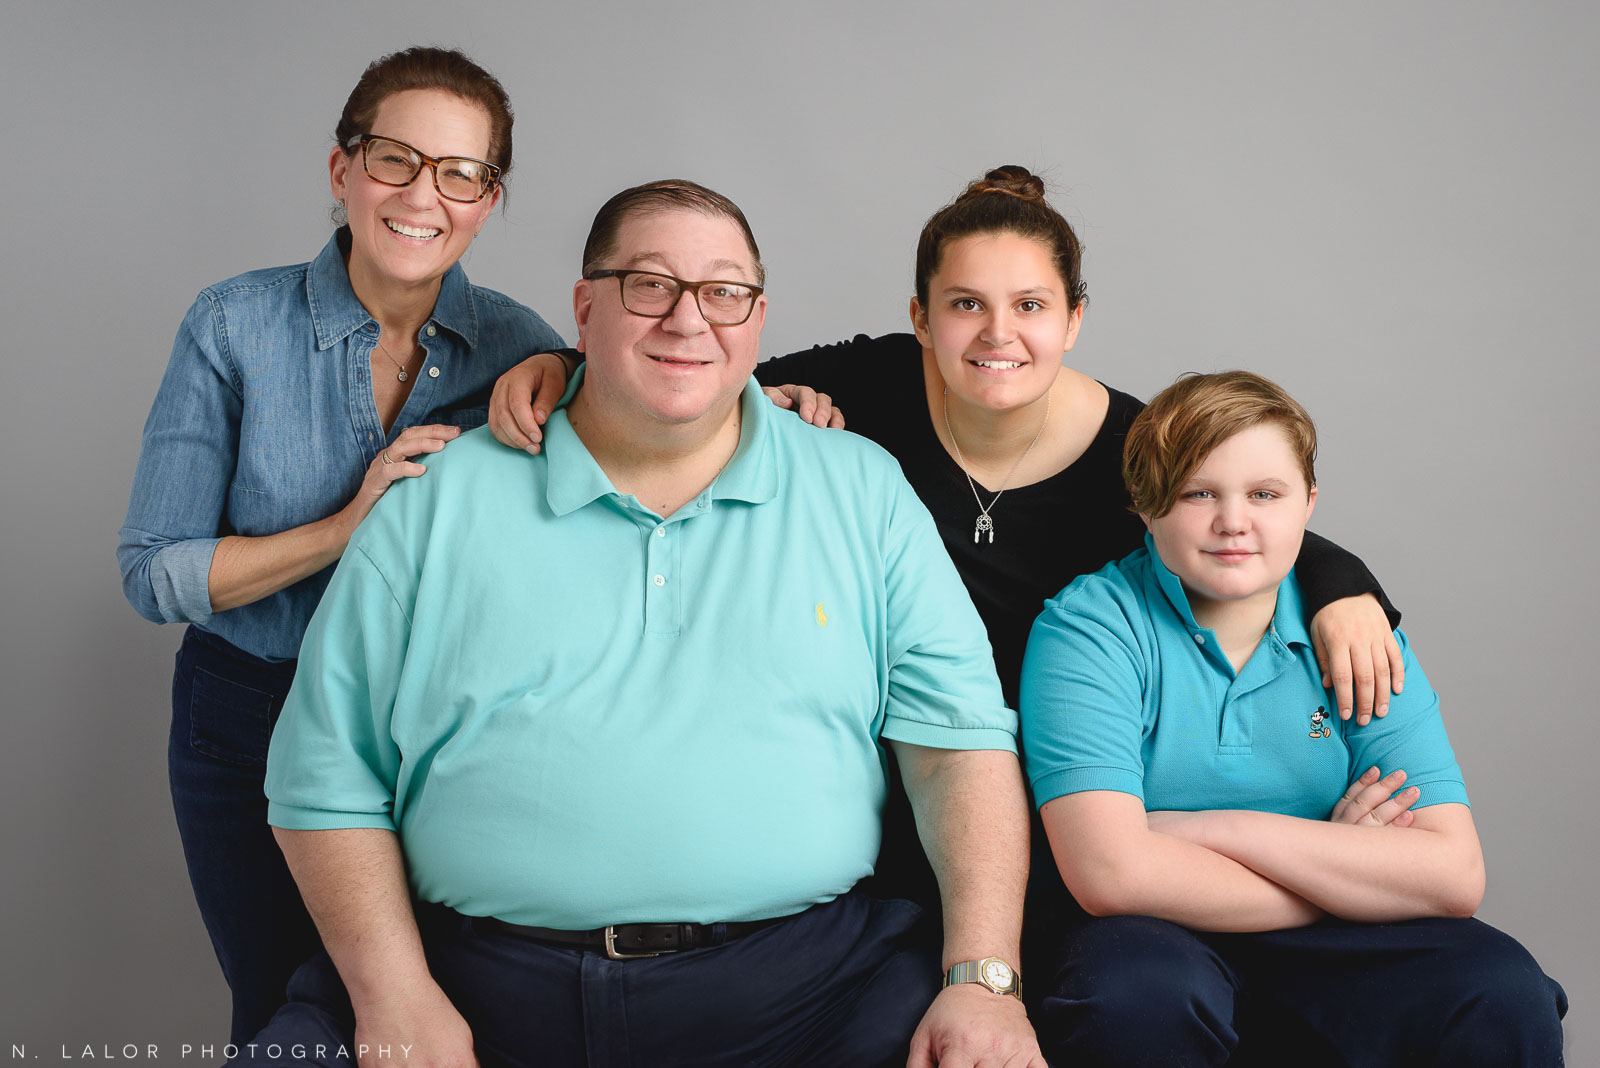 The whole family together. Teen family photo session with N. Lalor Photography. Greenwich, Connecticut studio photographer.